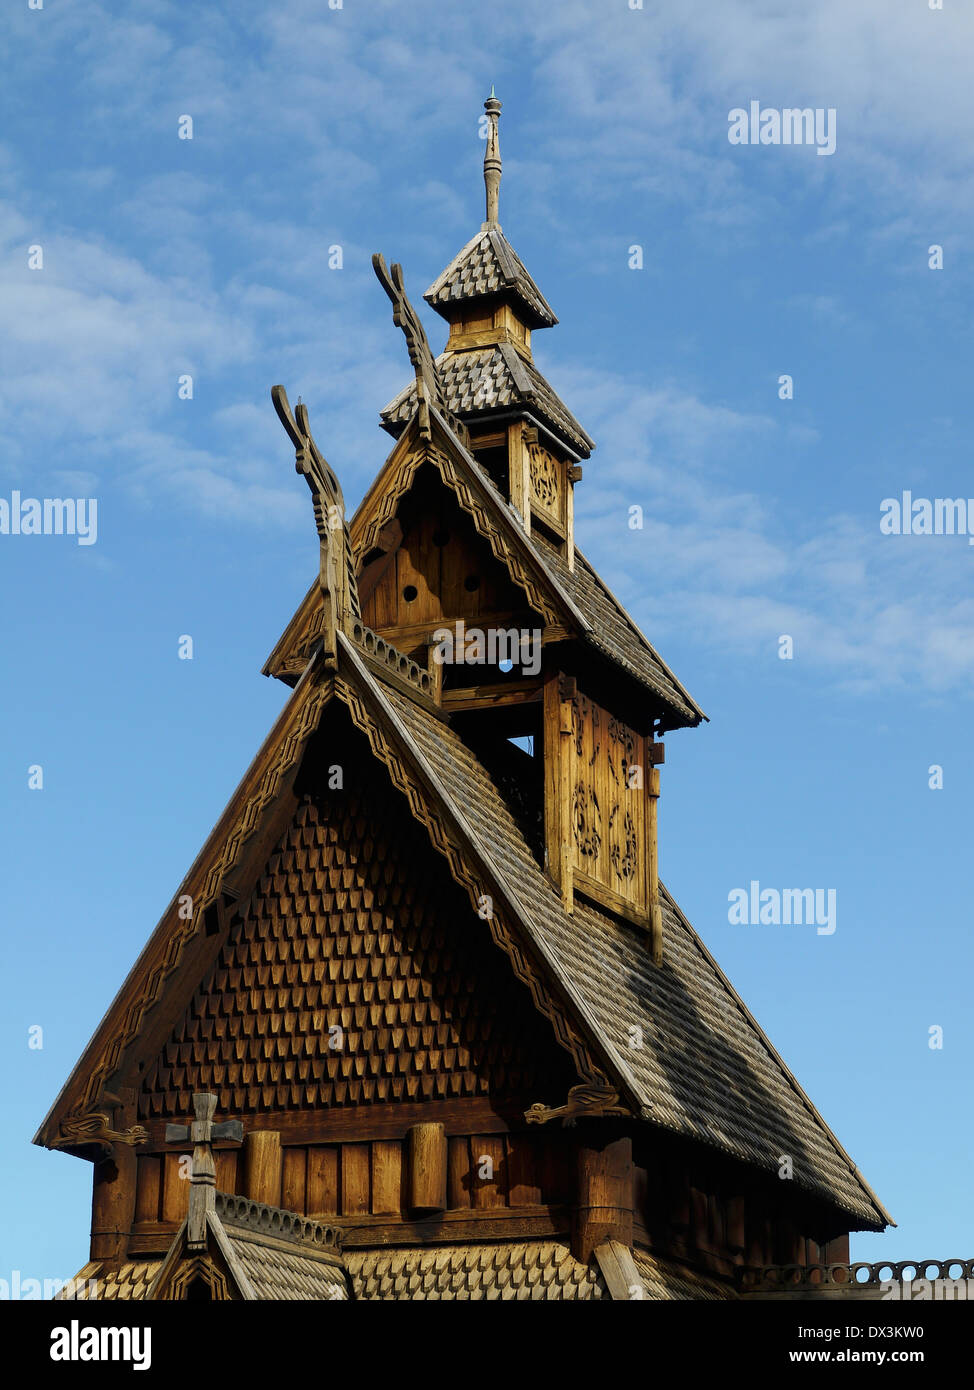 stave church, oslo, norway - Stock Image